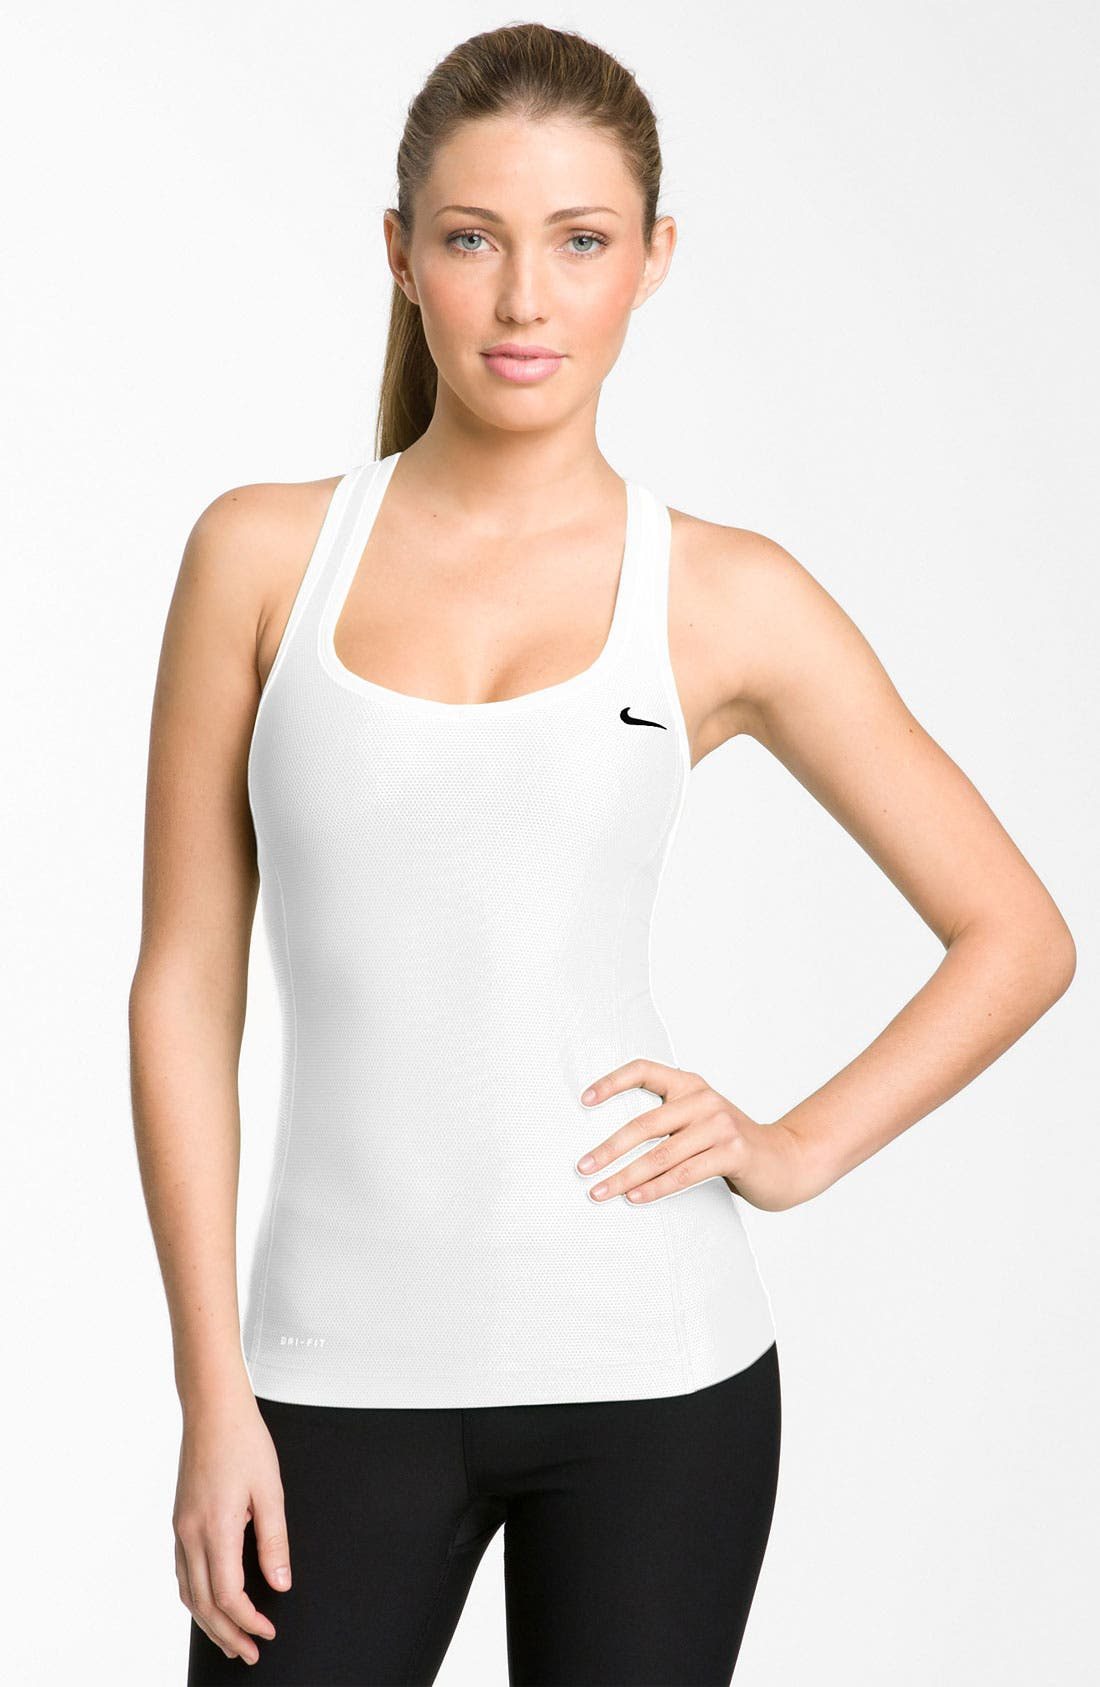 Main Image - Nike 'Victory' Long Bra Top